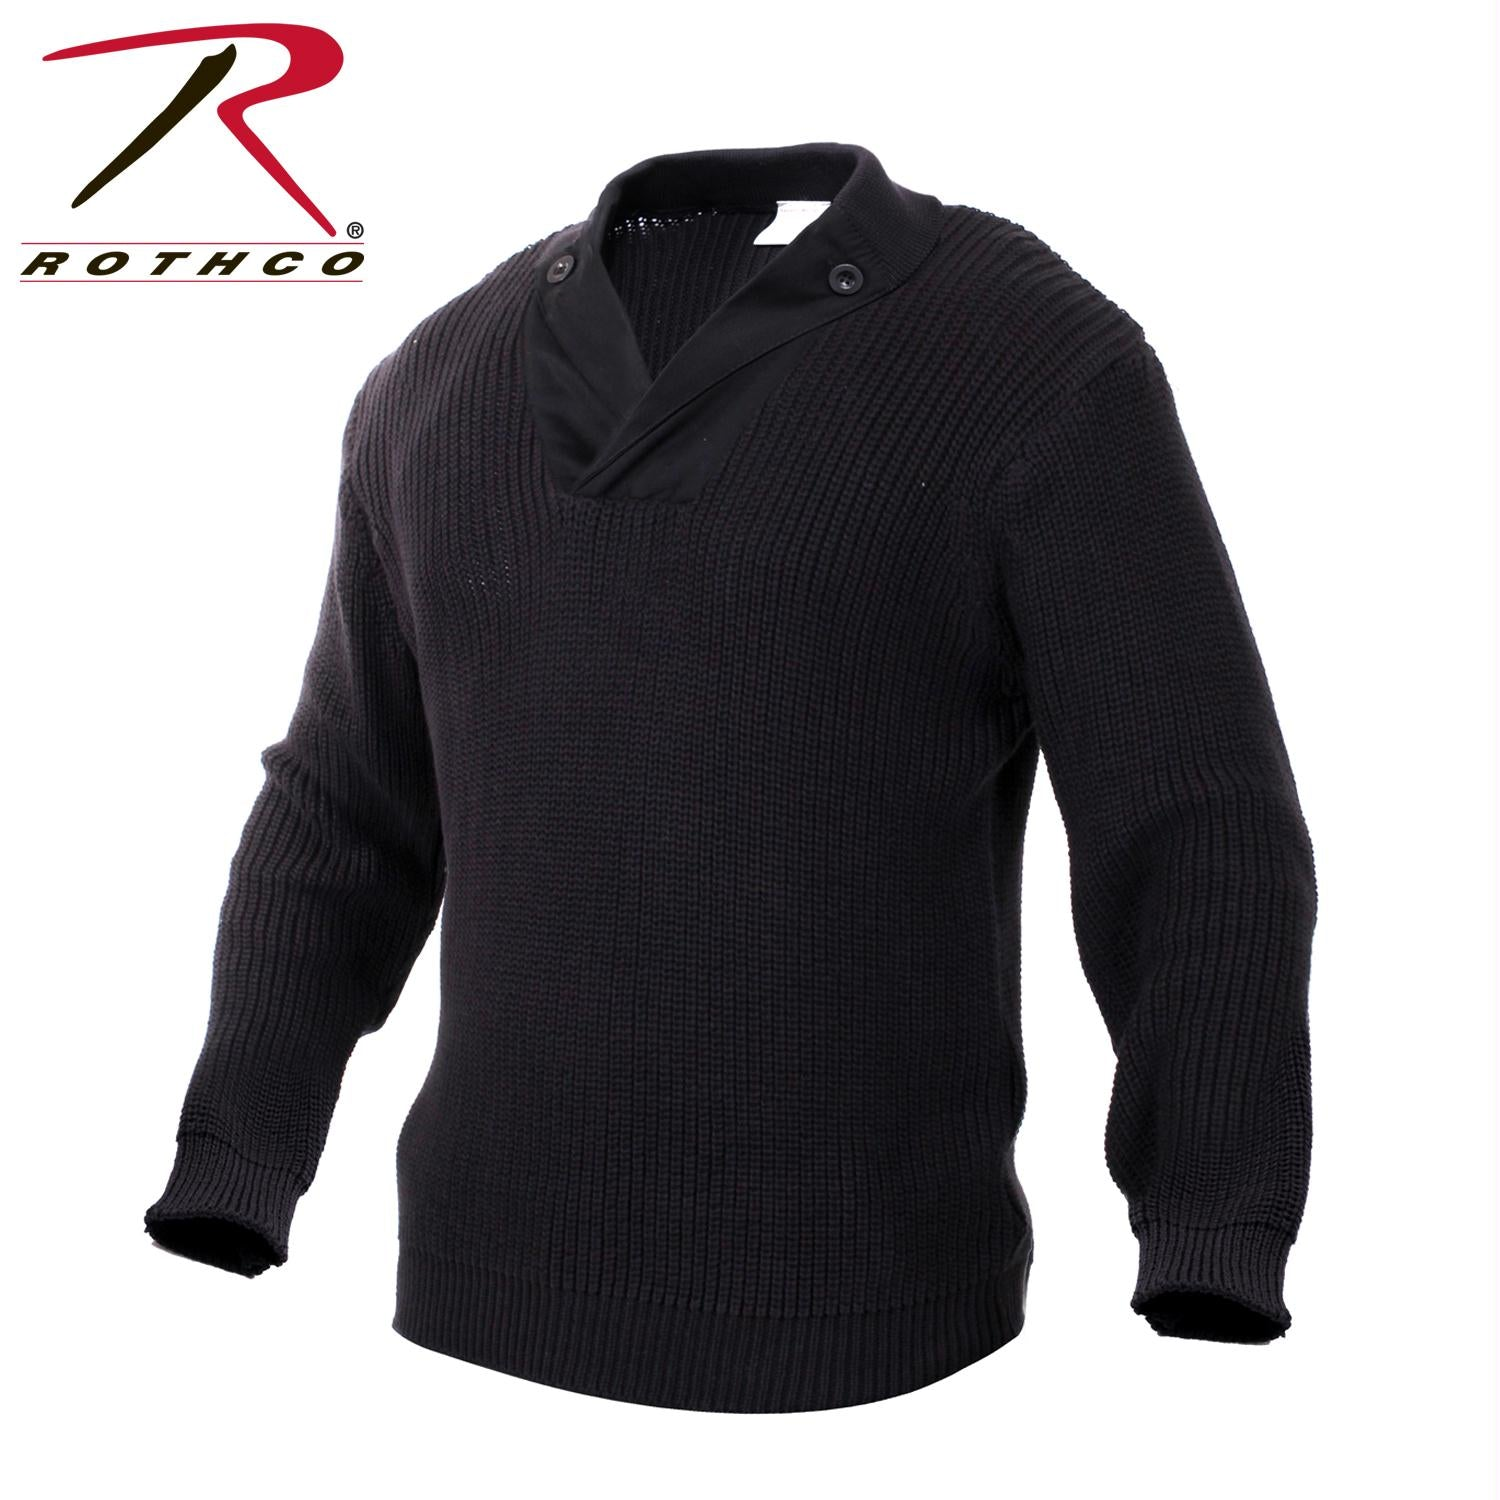 Rothco WWII Vintage Mechanics Sweater - Black / 3XL